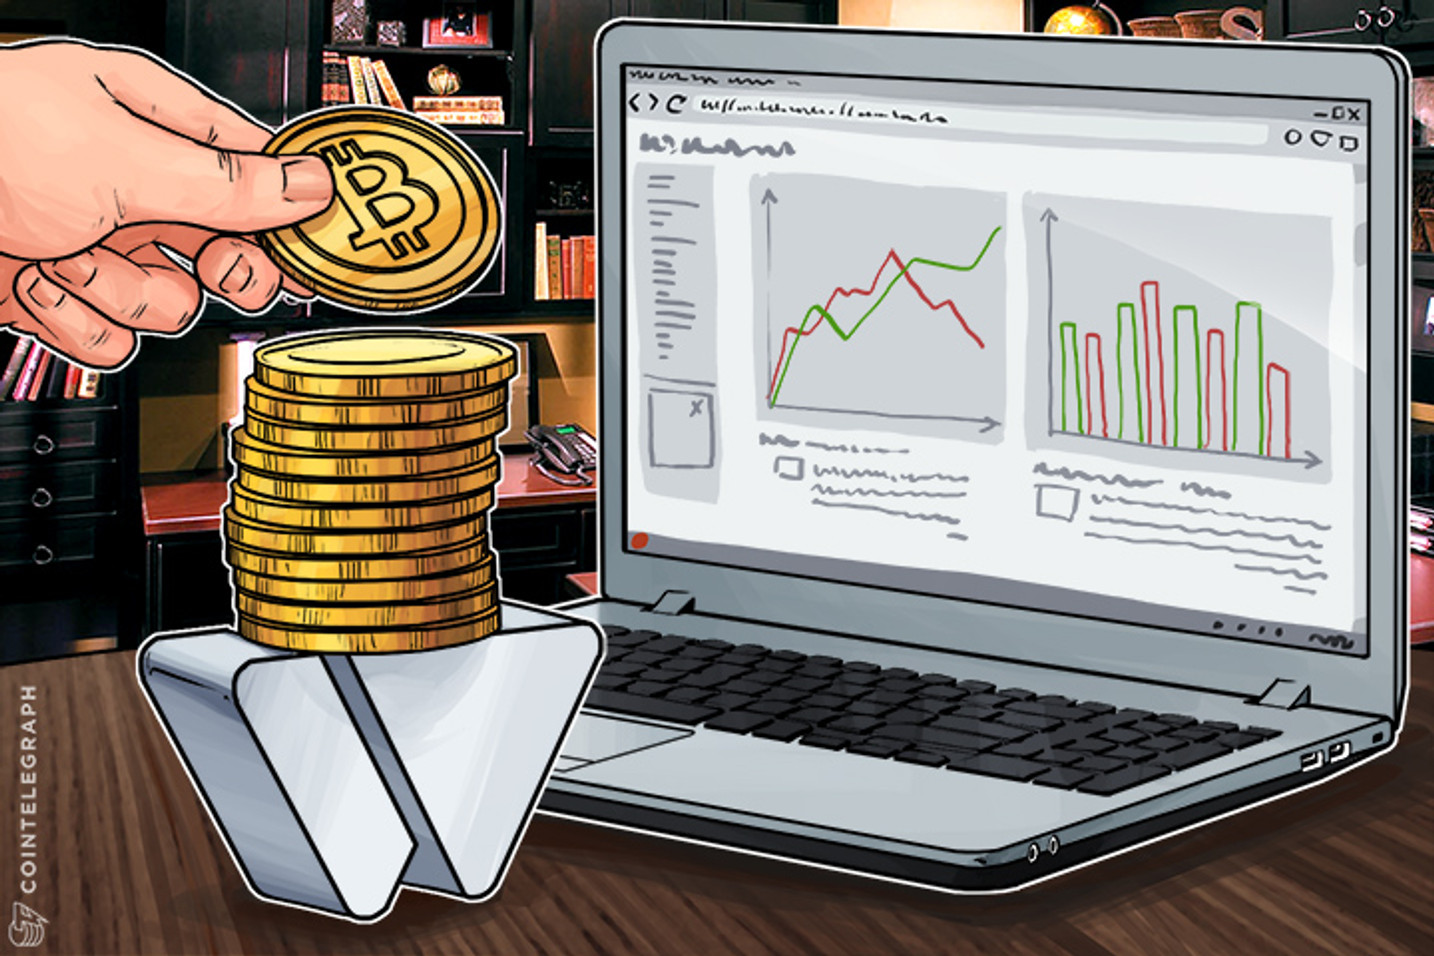 Whaleclub's Bitcoin-Only Trading Platform Can Help Stabilize Bitcoin Price